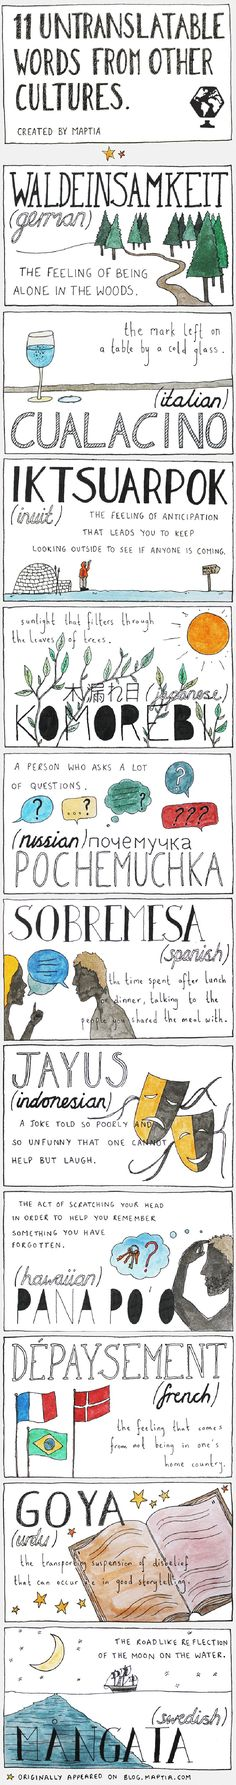 11 Untranslatable Words From Other Cultures. Understanding different languages is hard enough without the elusive feelings or ideas that some cultures are able to compress into one simple word.